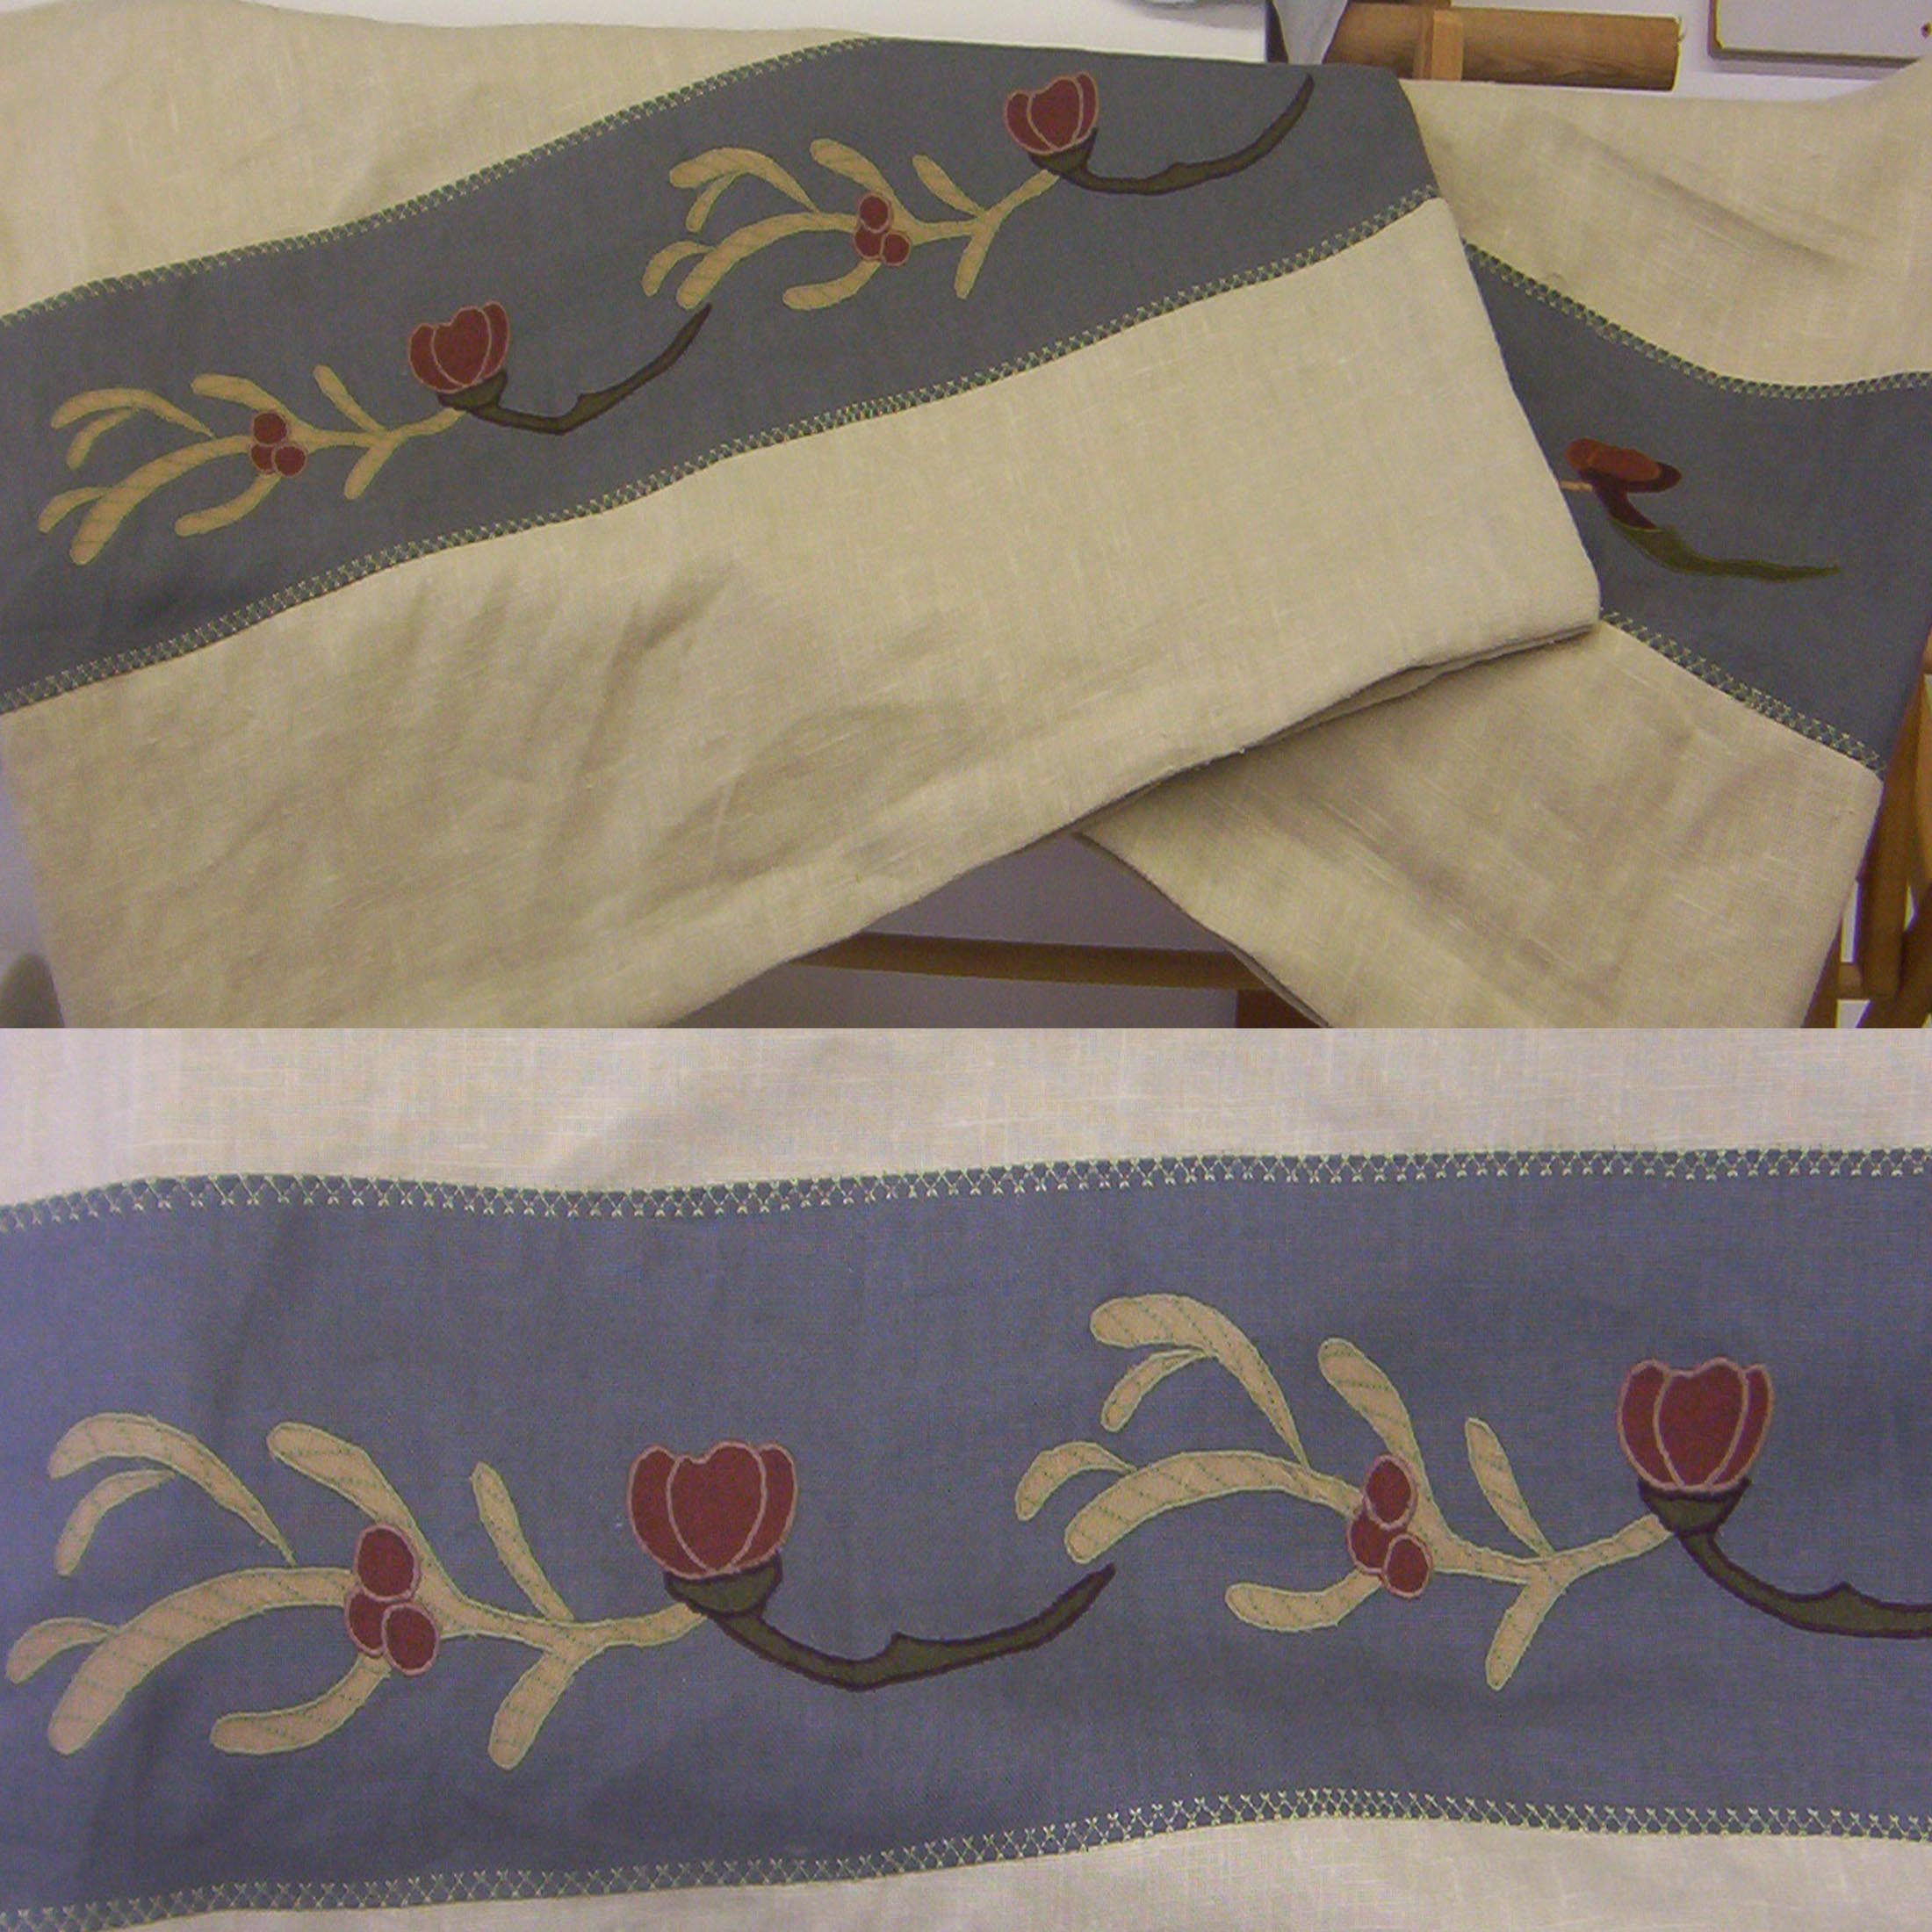 A custom applique border meant to coordinate with a Voysey wallpaper. This is a rather dense applique with triple top stitching in the leaves and we've thought too expensive to include in our stock designs!